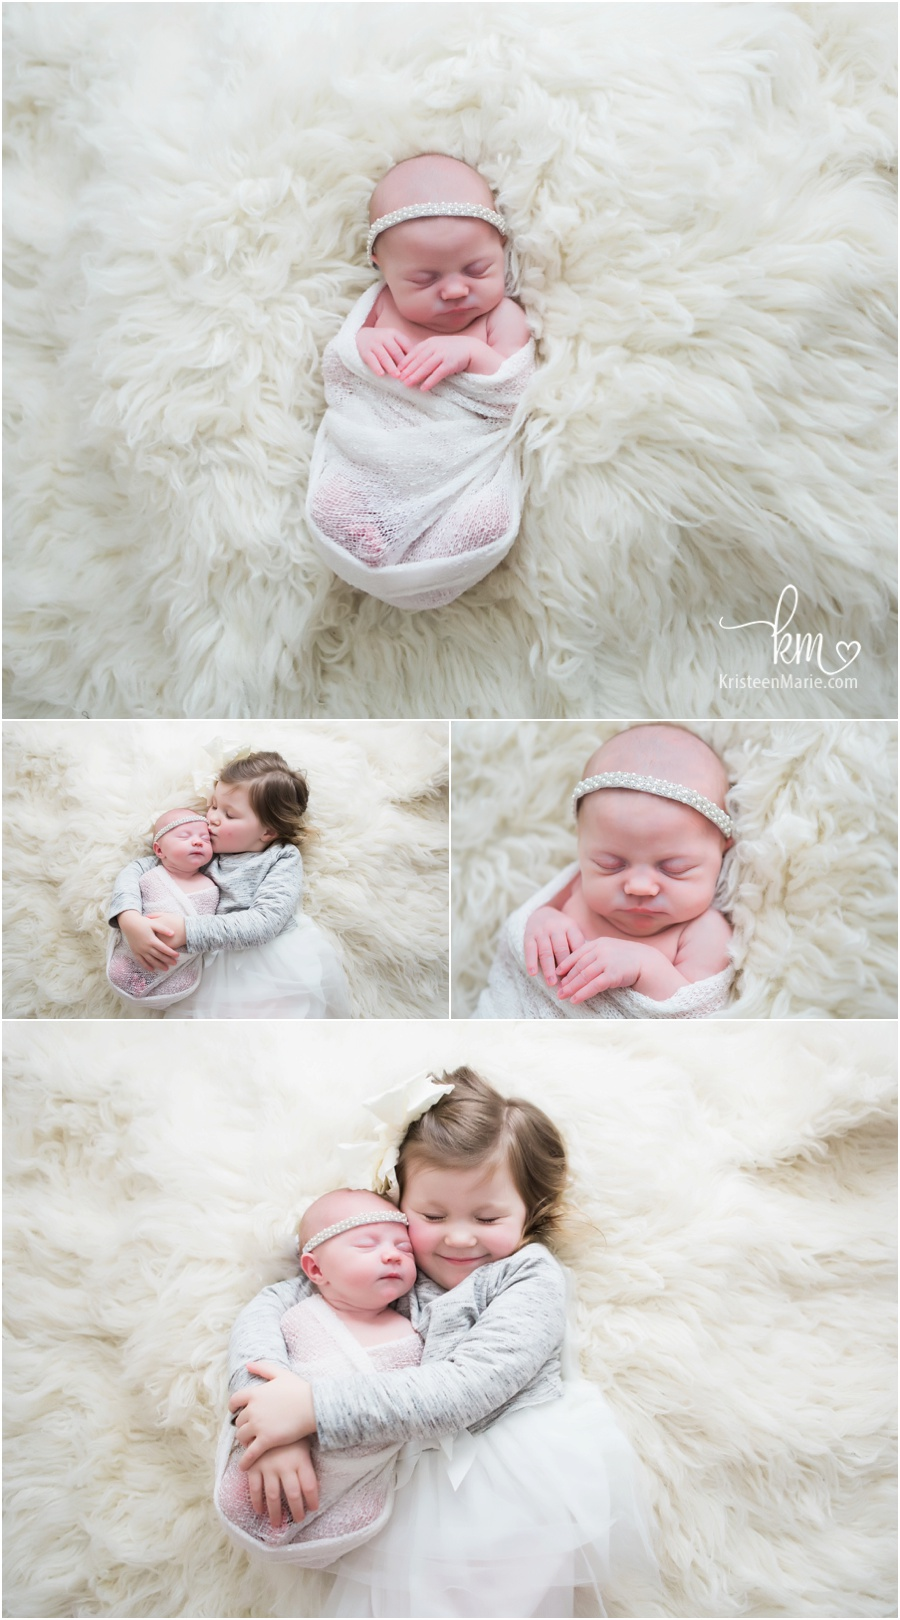 sibling pictures with newborn baby and big sister - cream backdrop